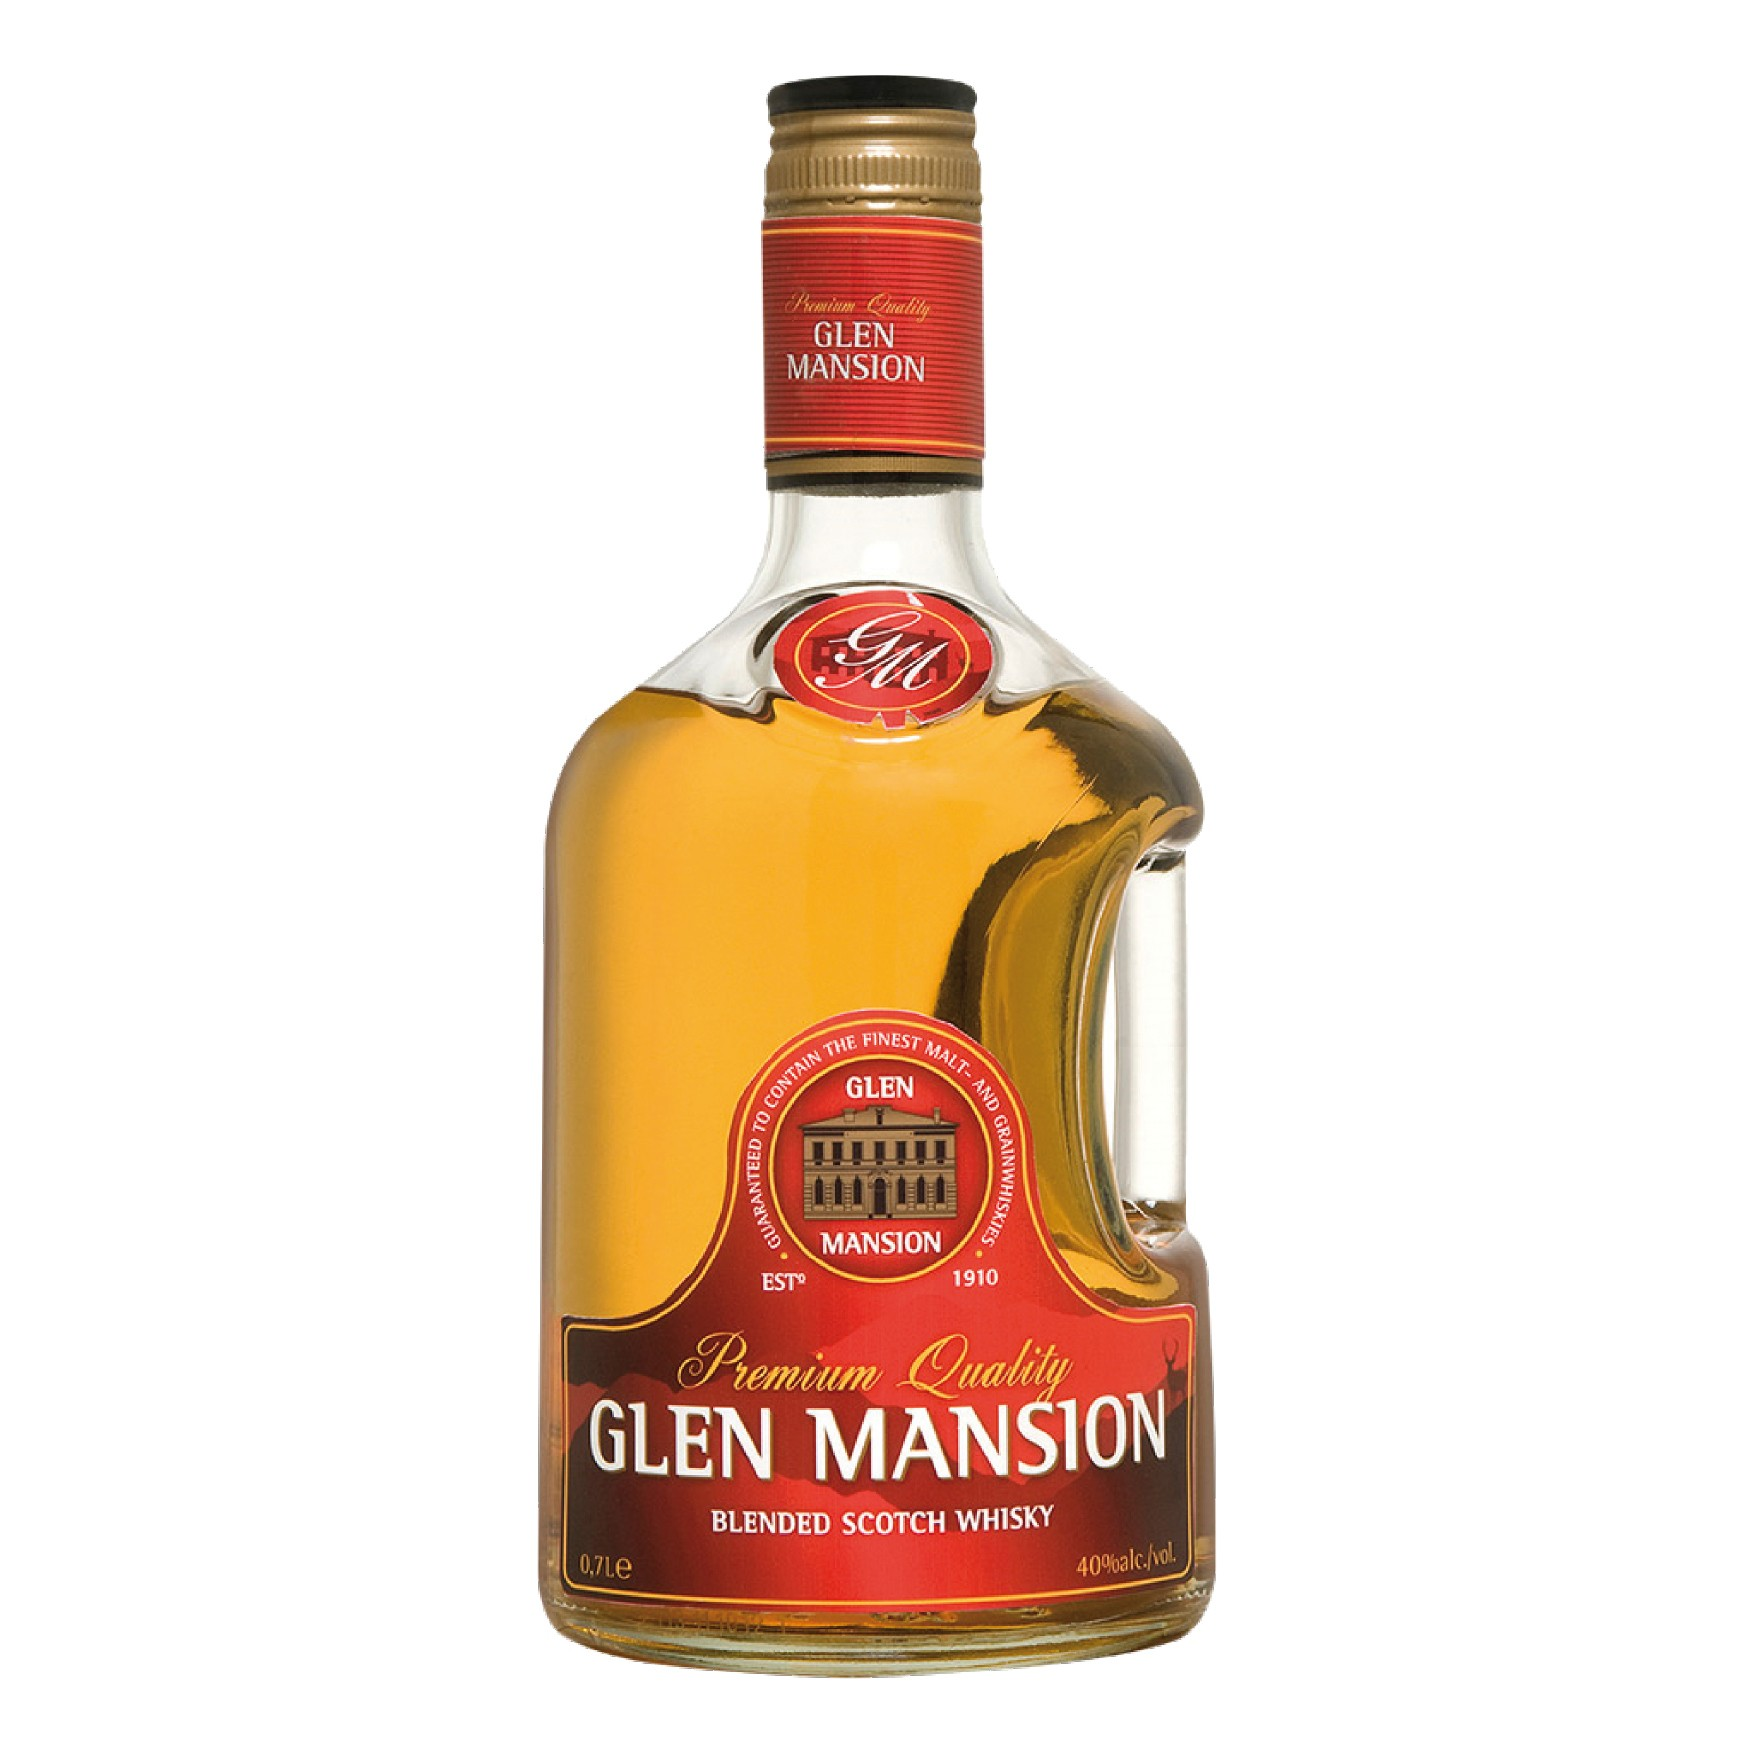 Glen Mansion Scotch Whisky